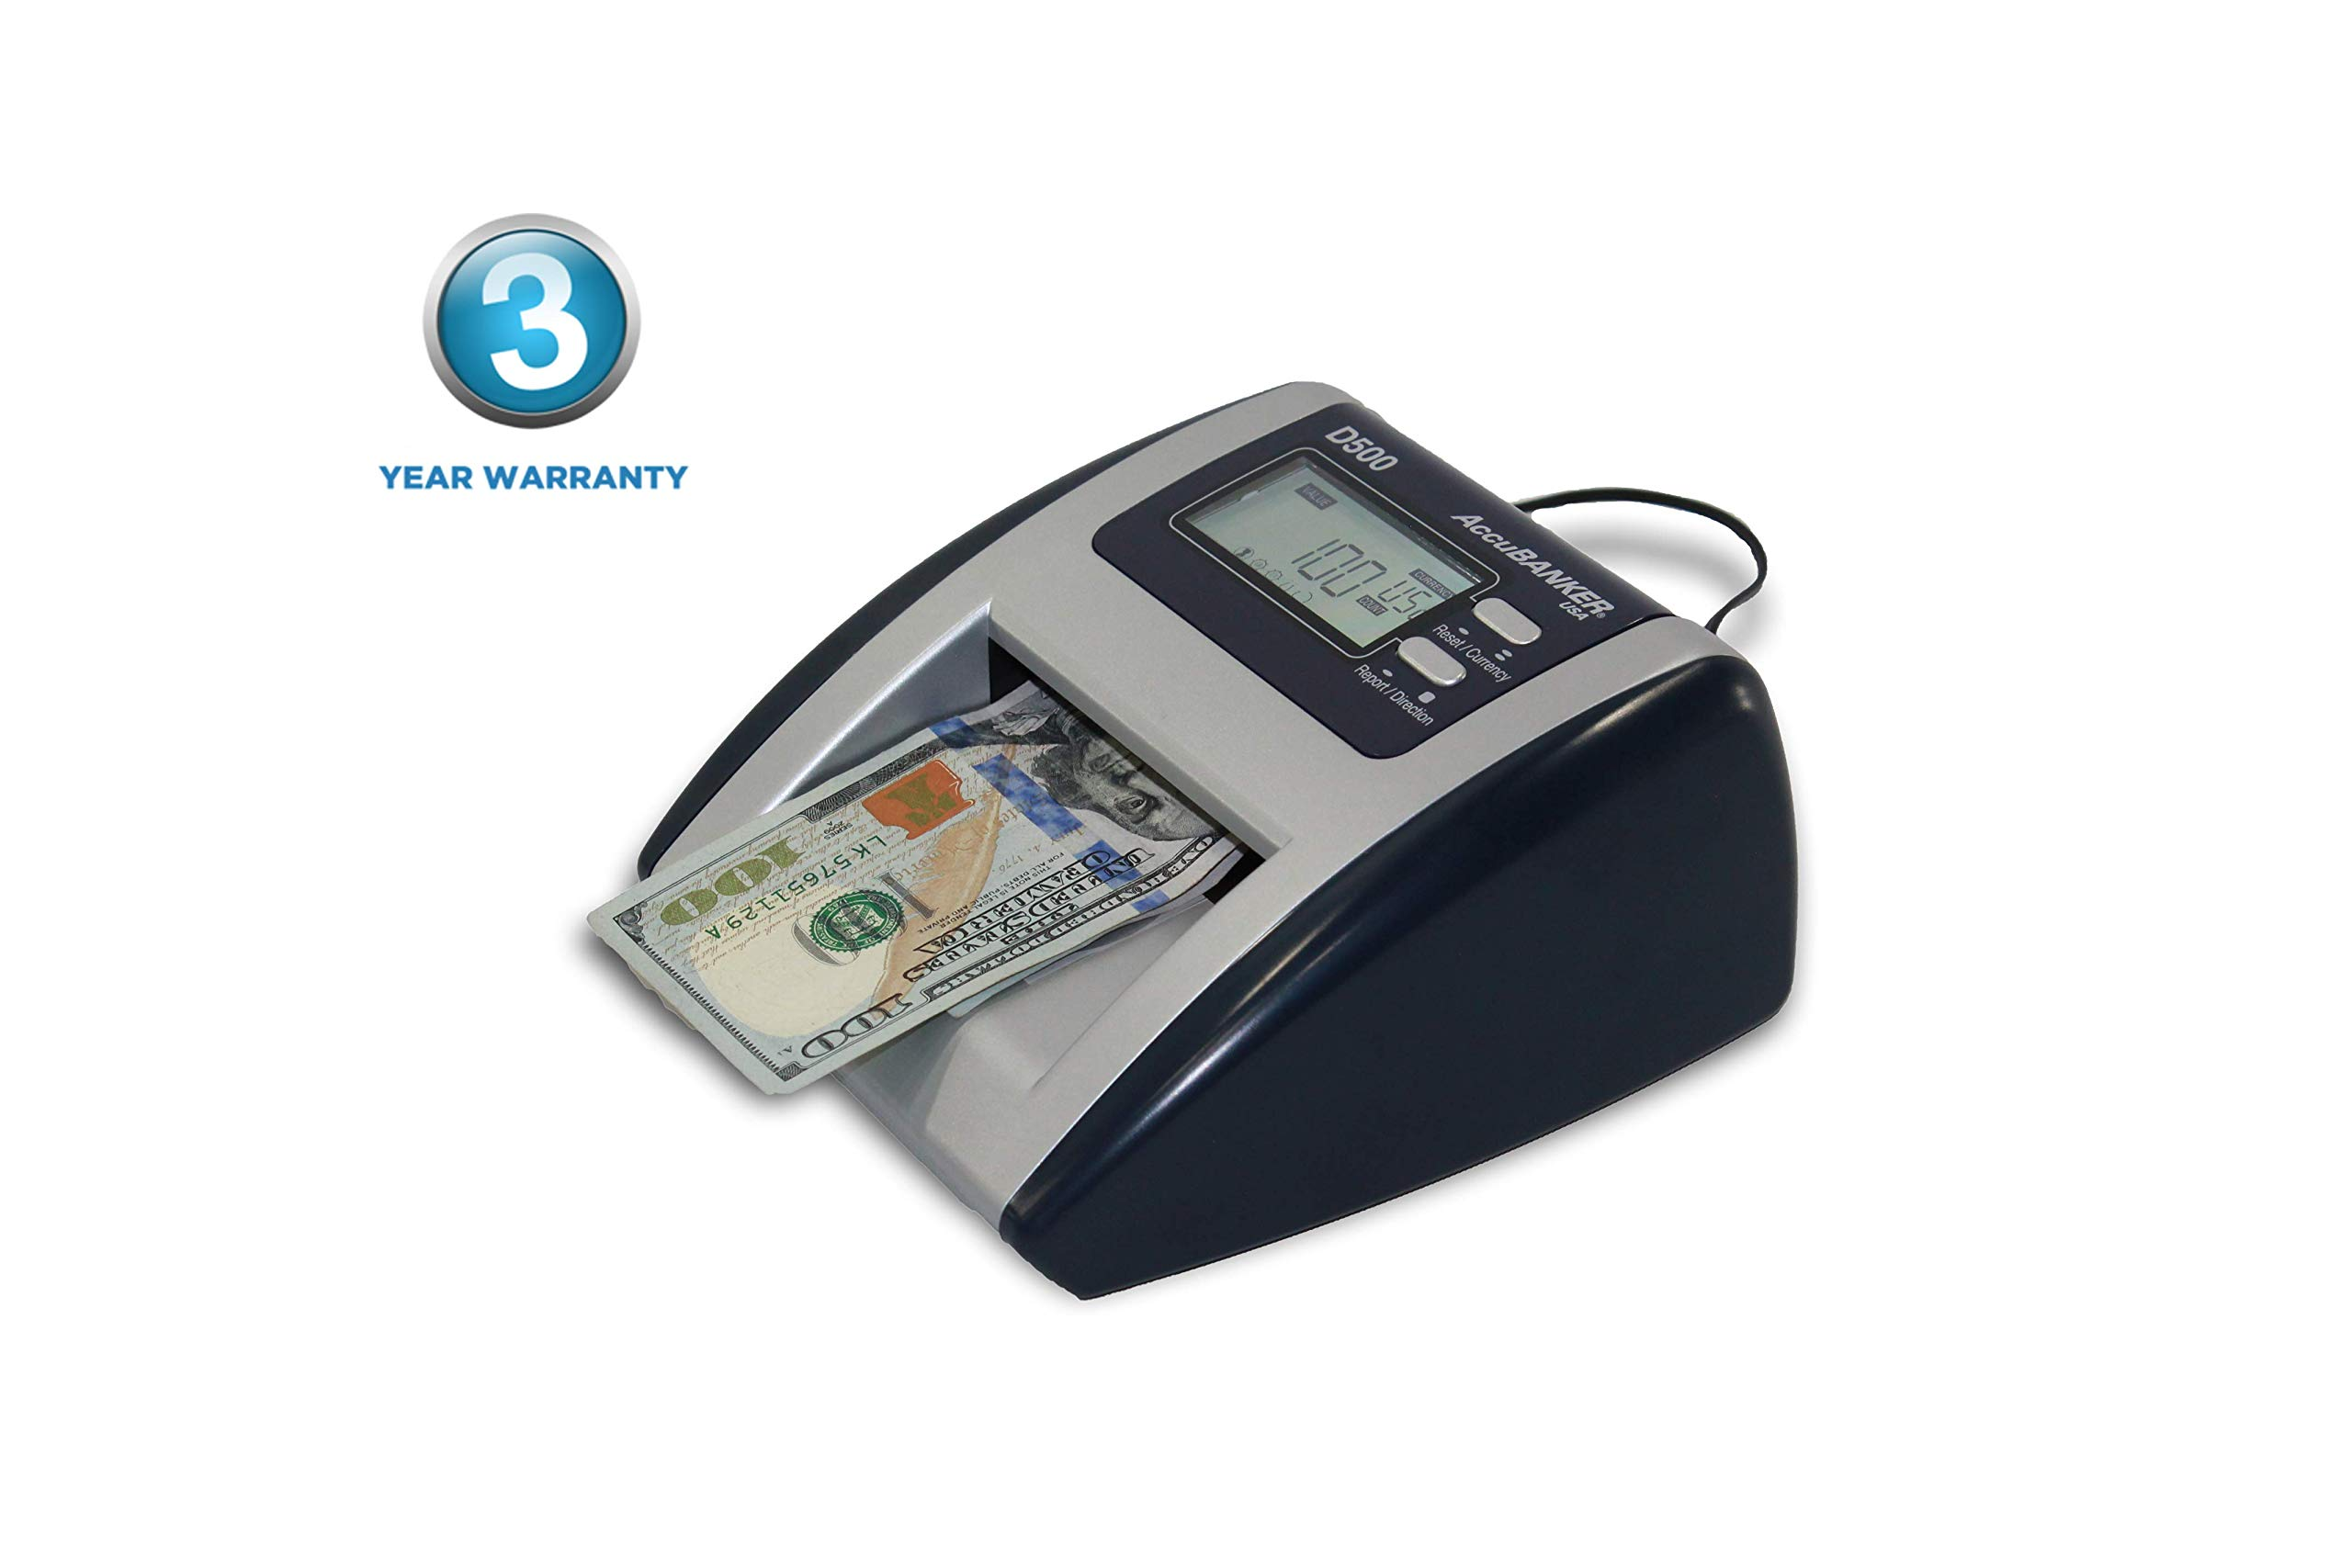 AccuBANKER D500 Automatic Counterfeit Detector by AccuBANKER